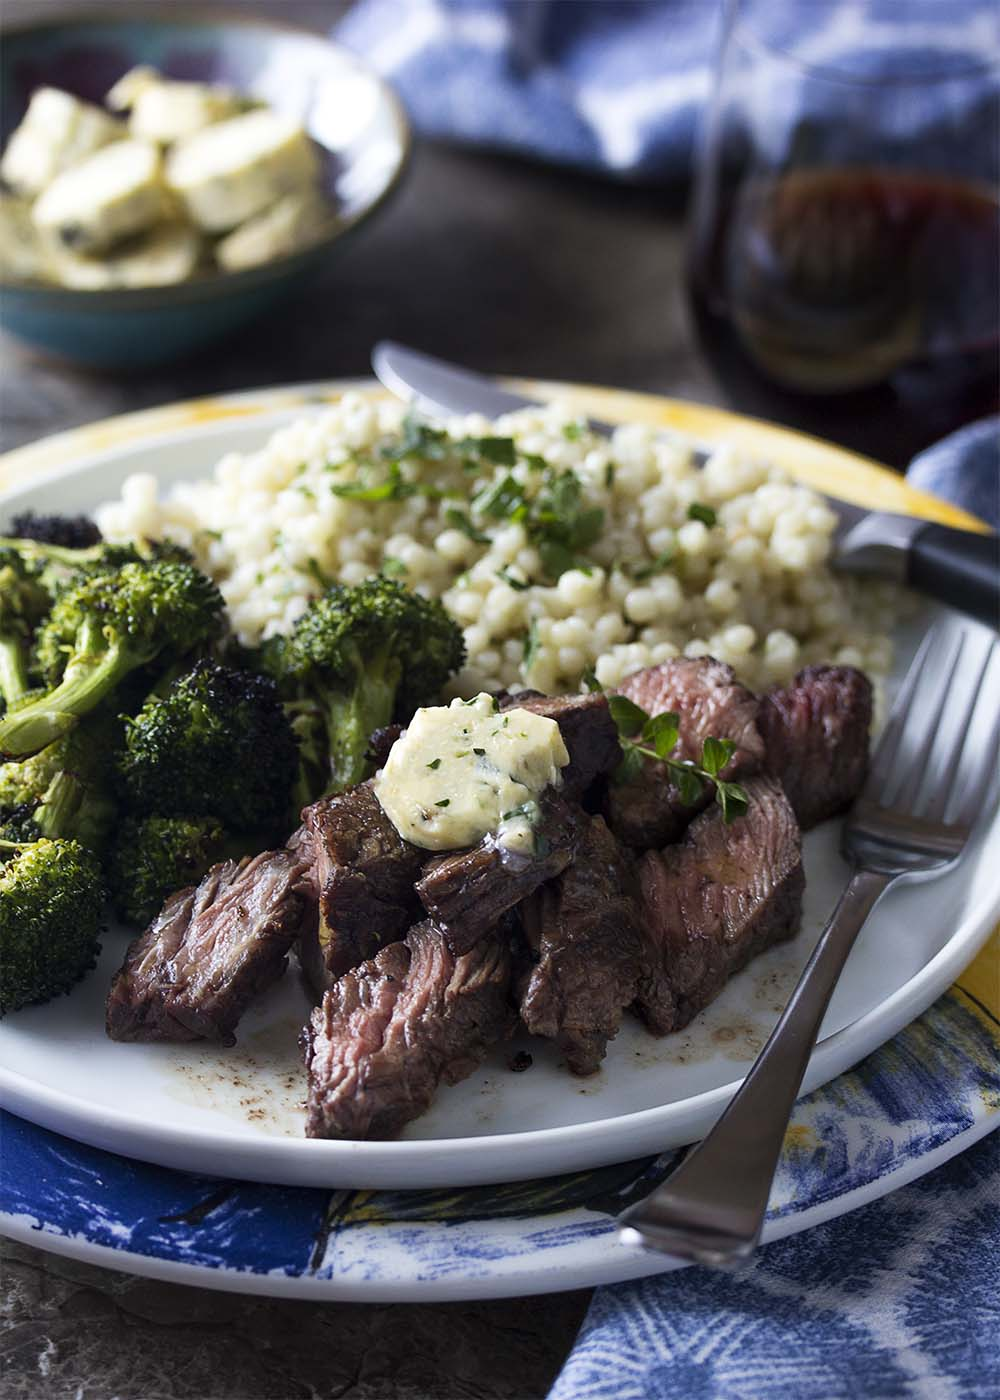 Sliced grilled sirloin tip steaks on a plate topped with shallot butter. Grilled broccoli and Israeli couscous complete the meal.